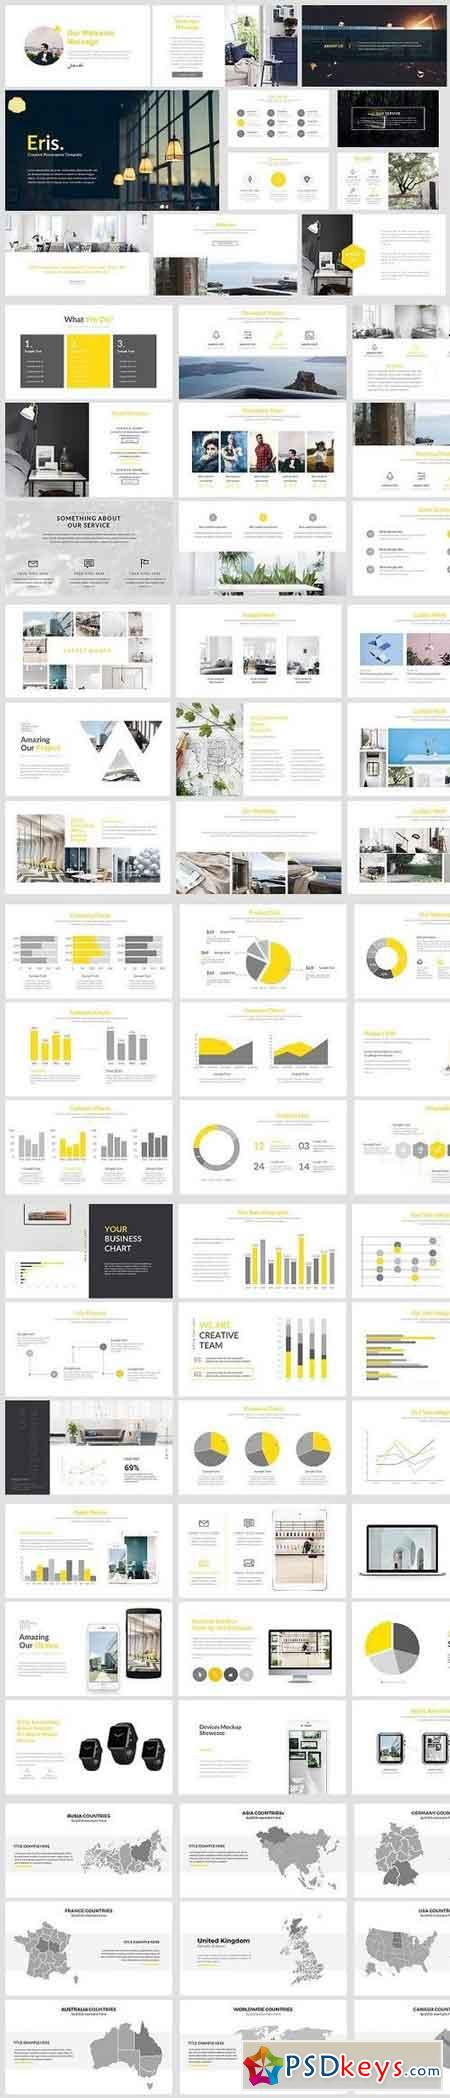 dorable powerpoint template torrent image resume ideas